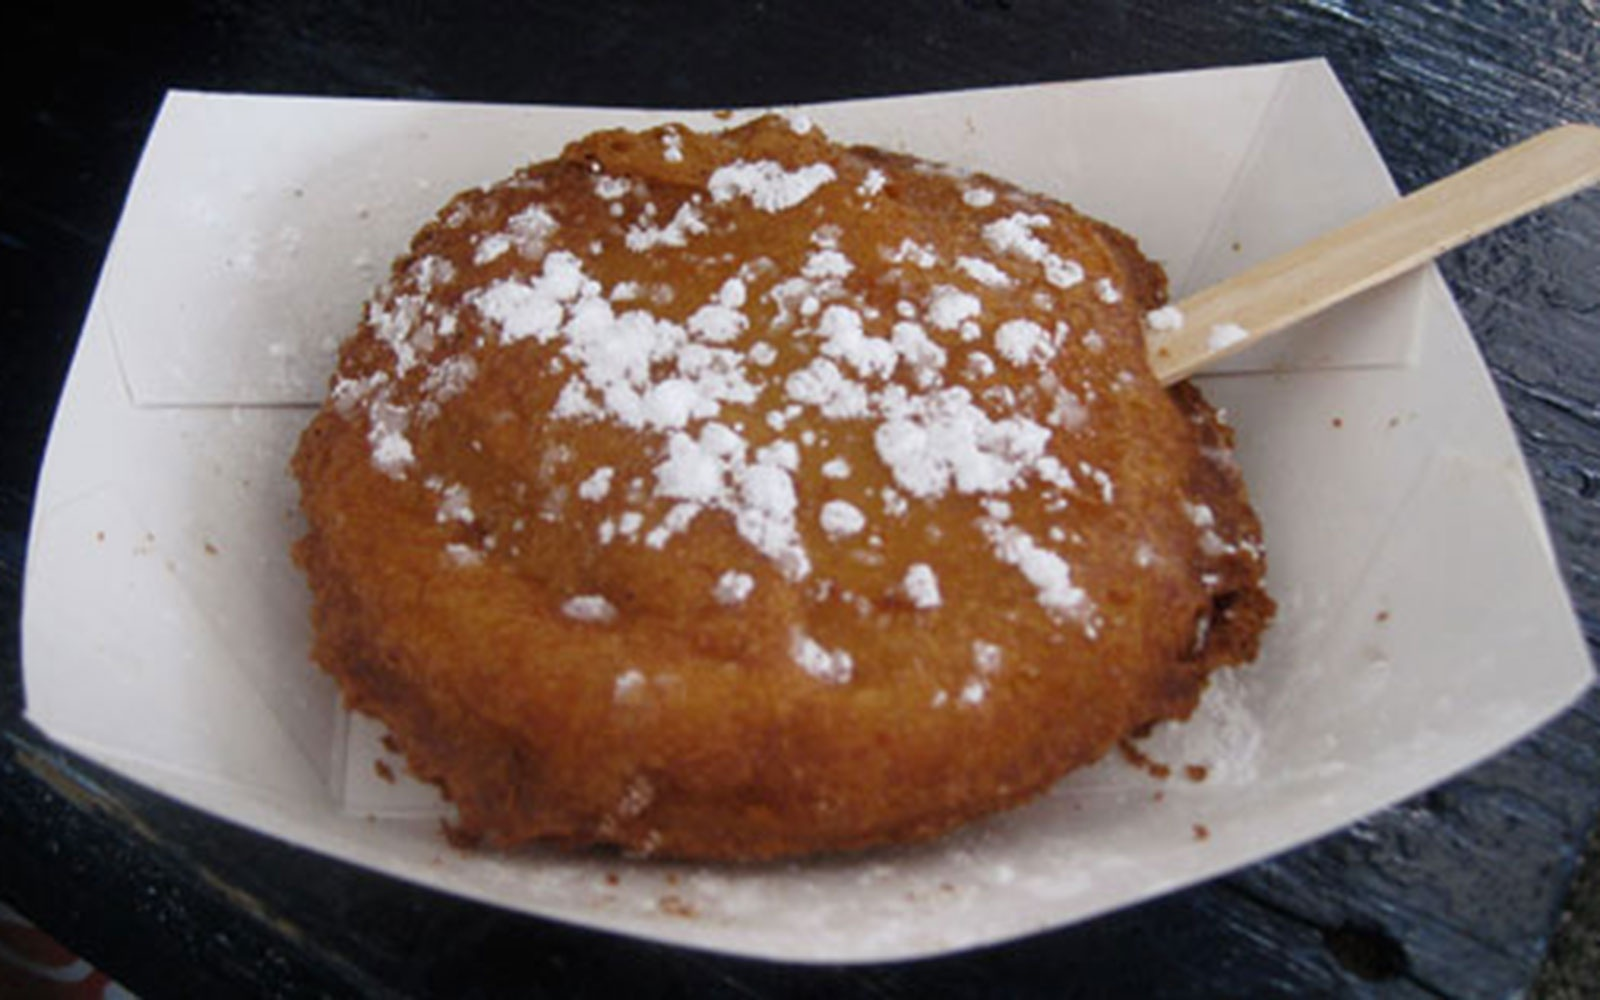 Iowa State Fair: Golden-Fried Peanut Butter & Jelly on A Stick